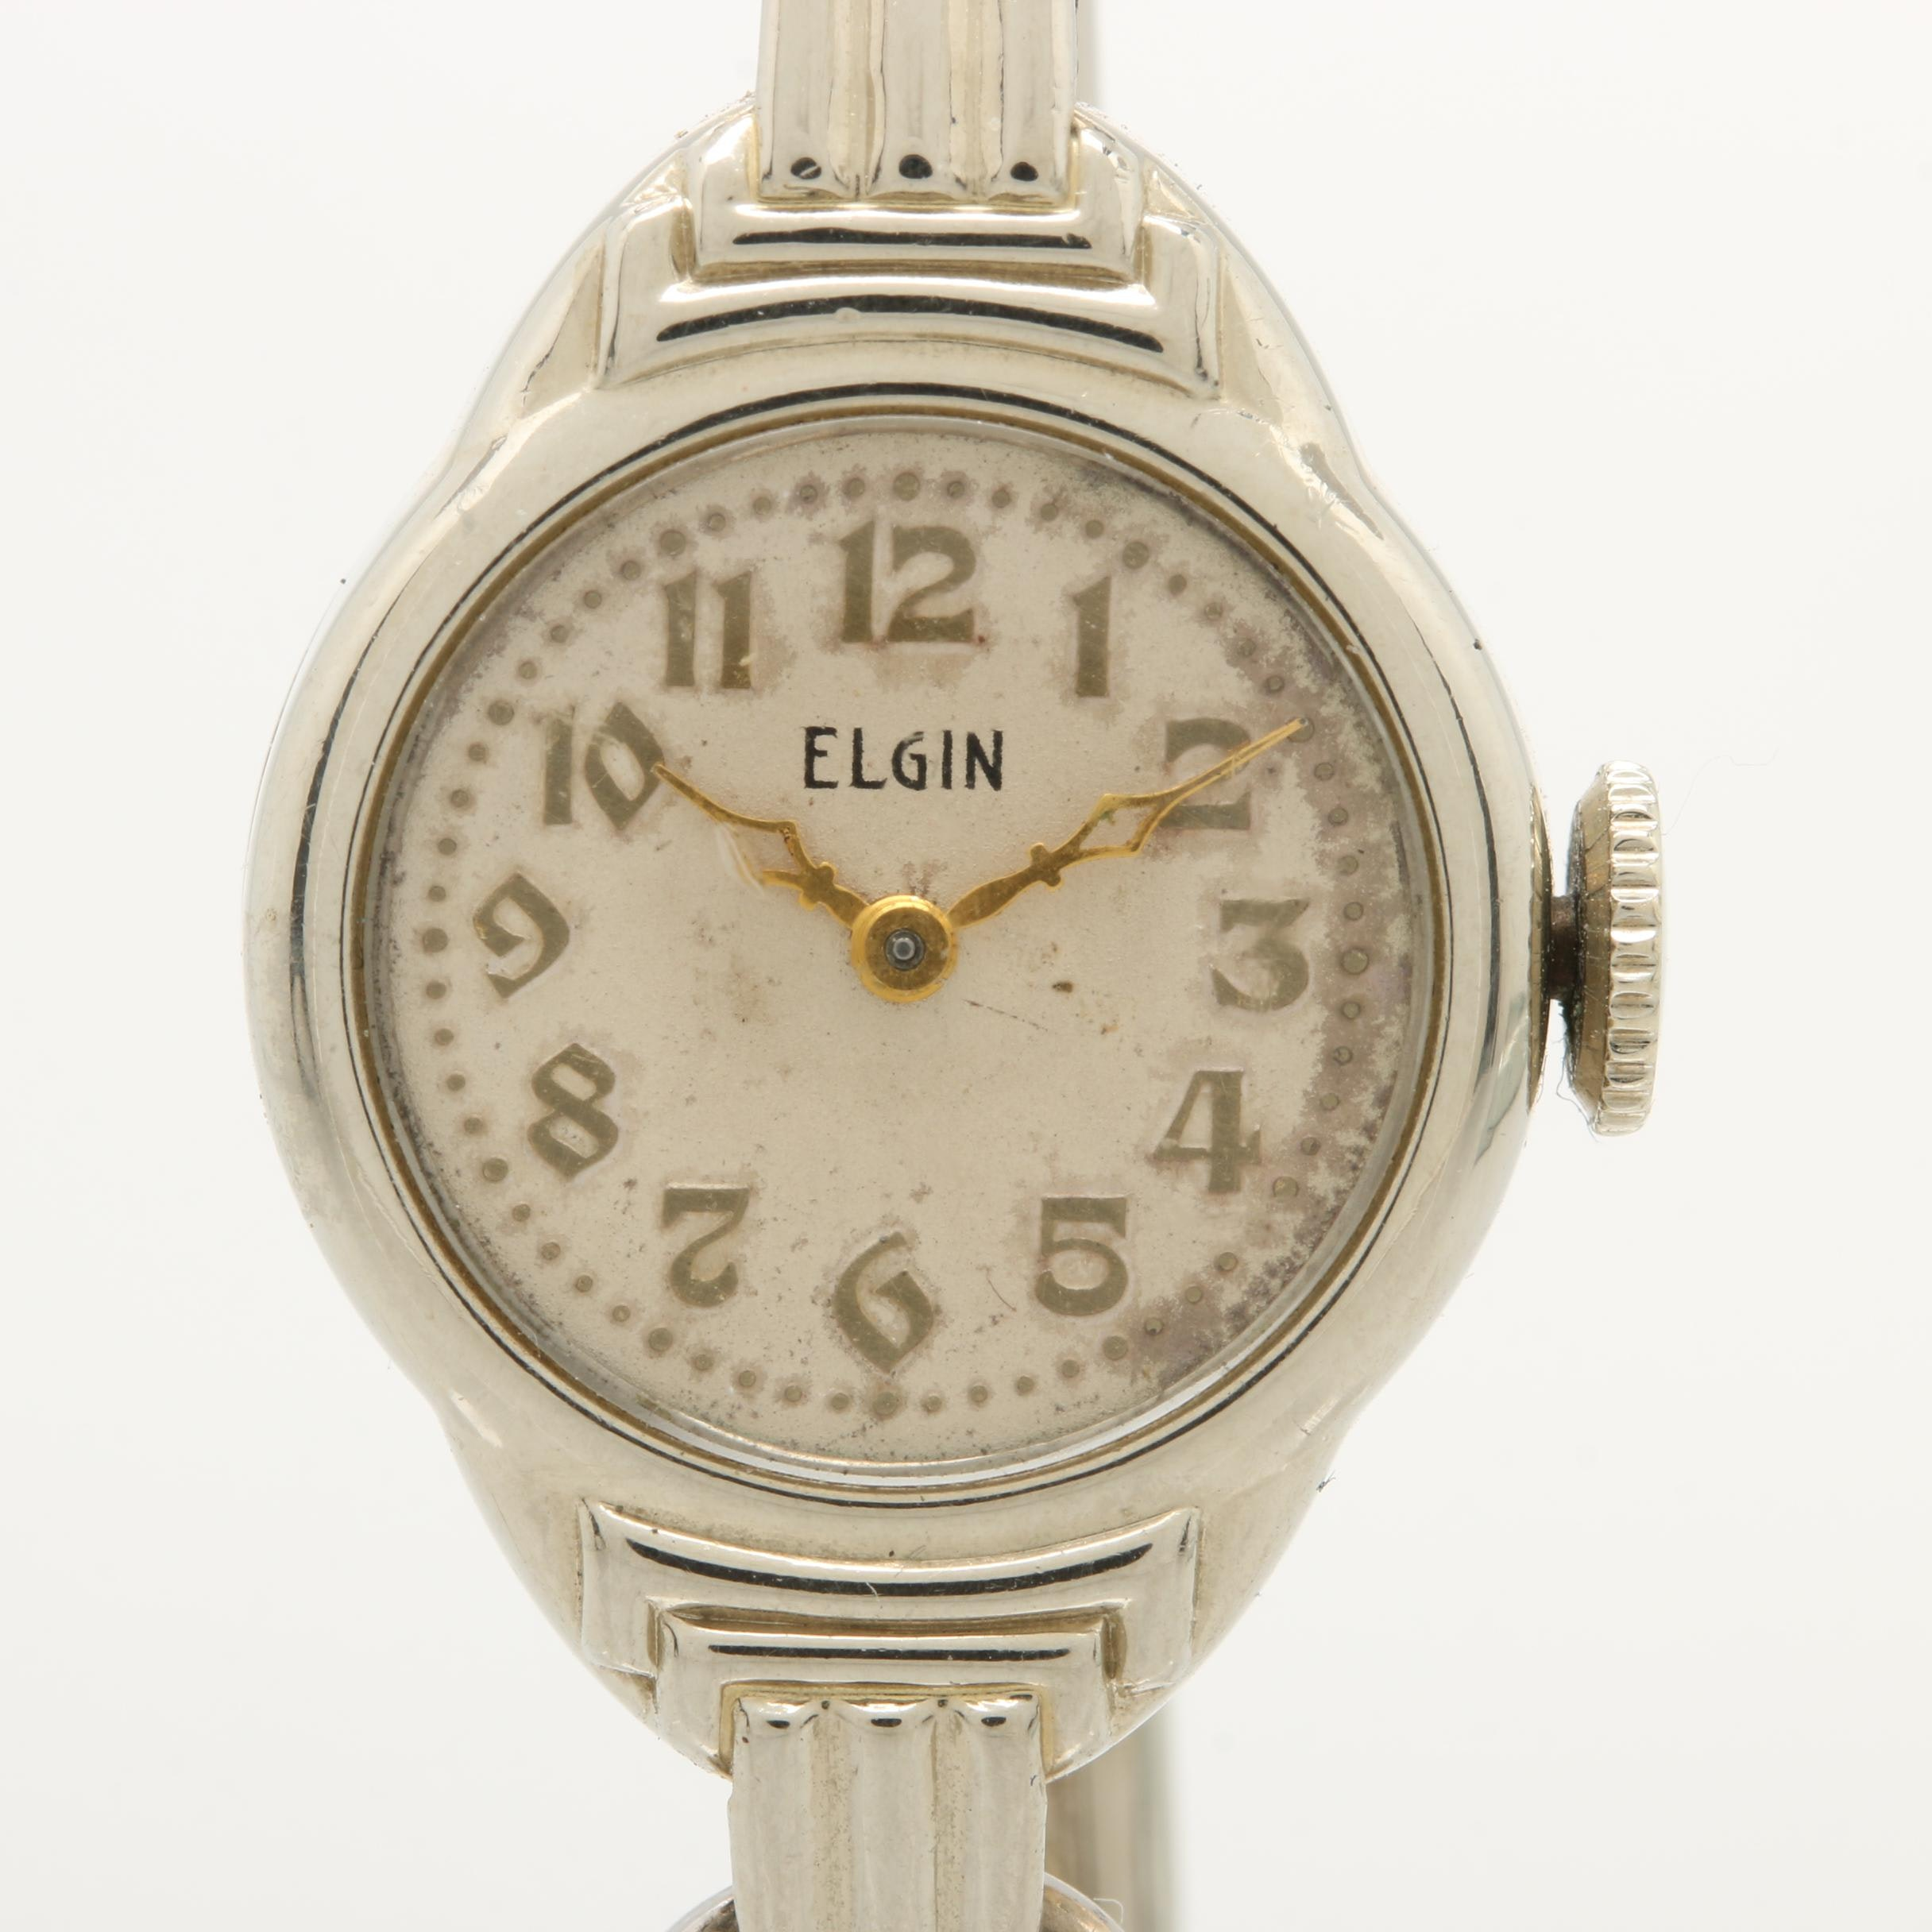 1935 Elgin 14K White Gold Filled Wristwatch